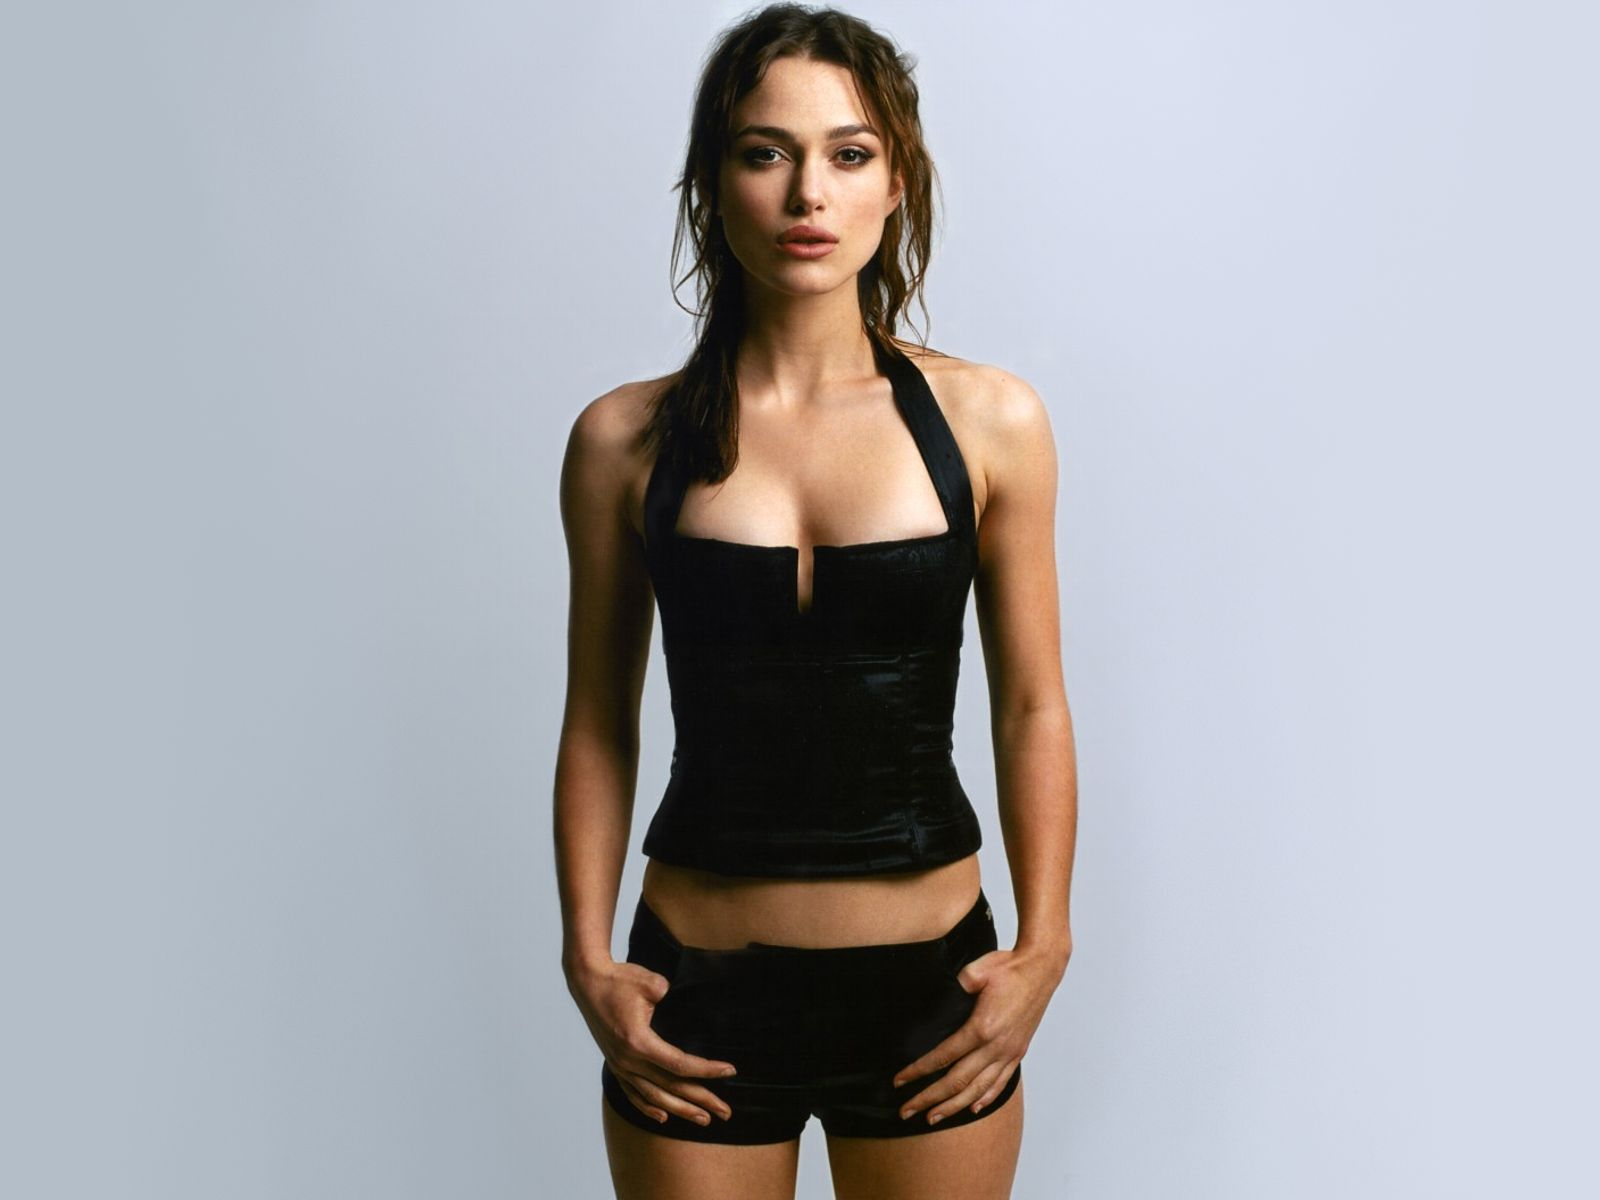 Keira knightley / naked online photos 65